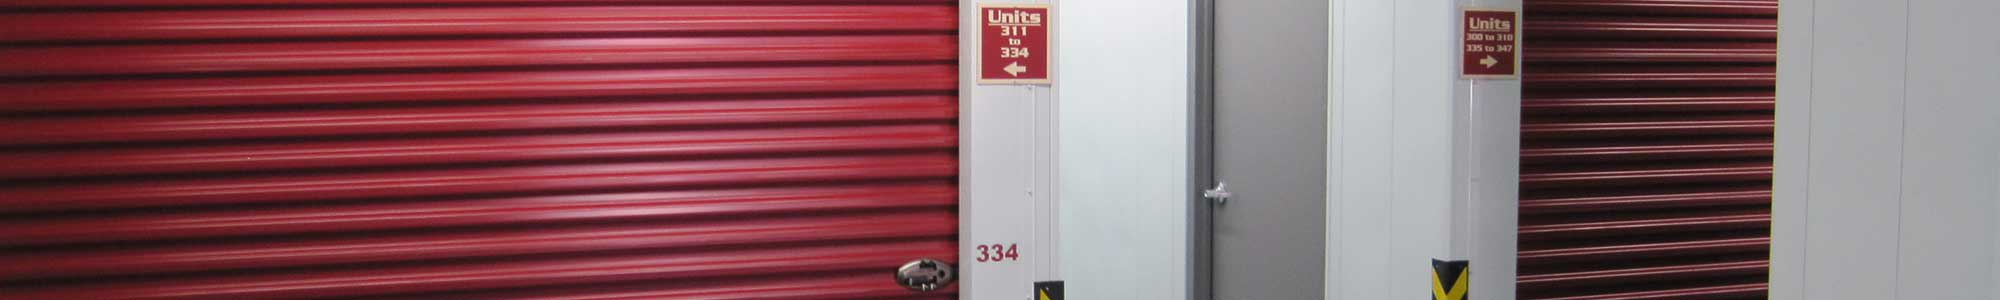 Contact us for your self storage needs in Rogers